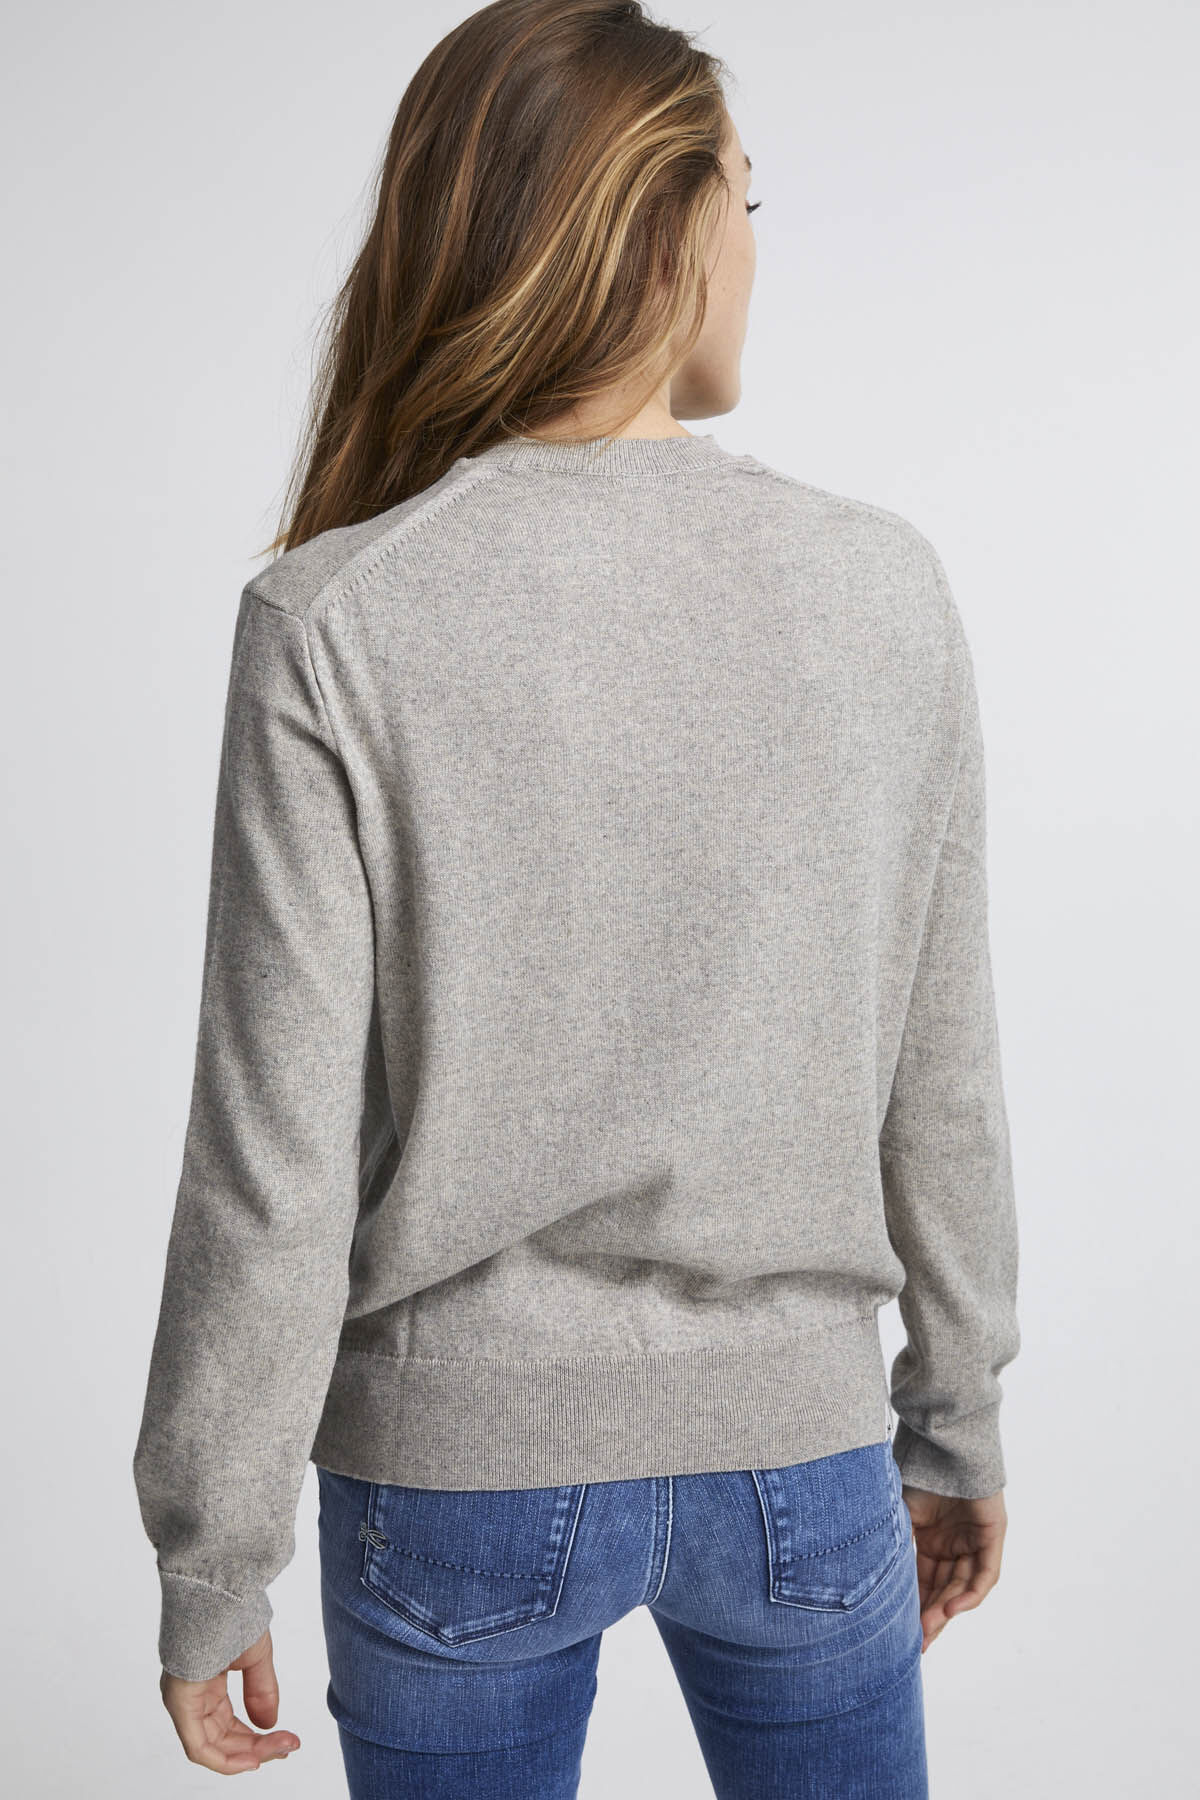 TAYLOR CREW NECK Brushed Jersey - Oversized Fit